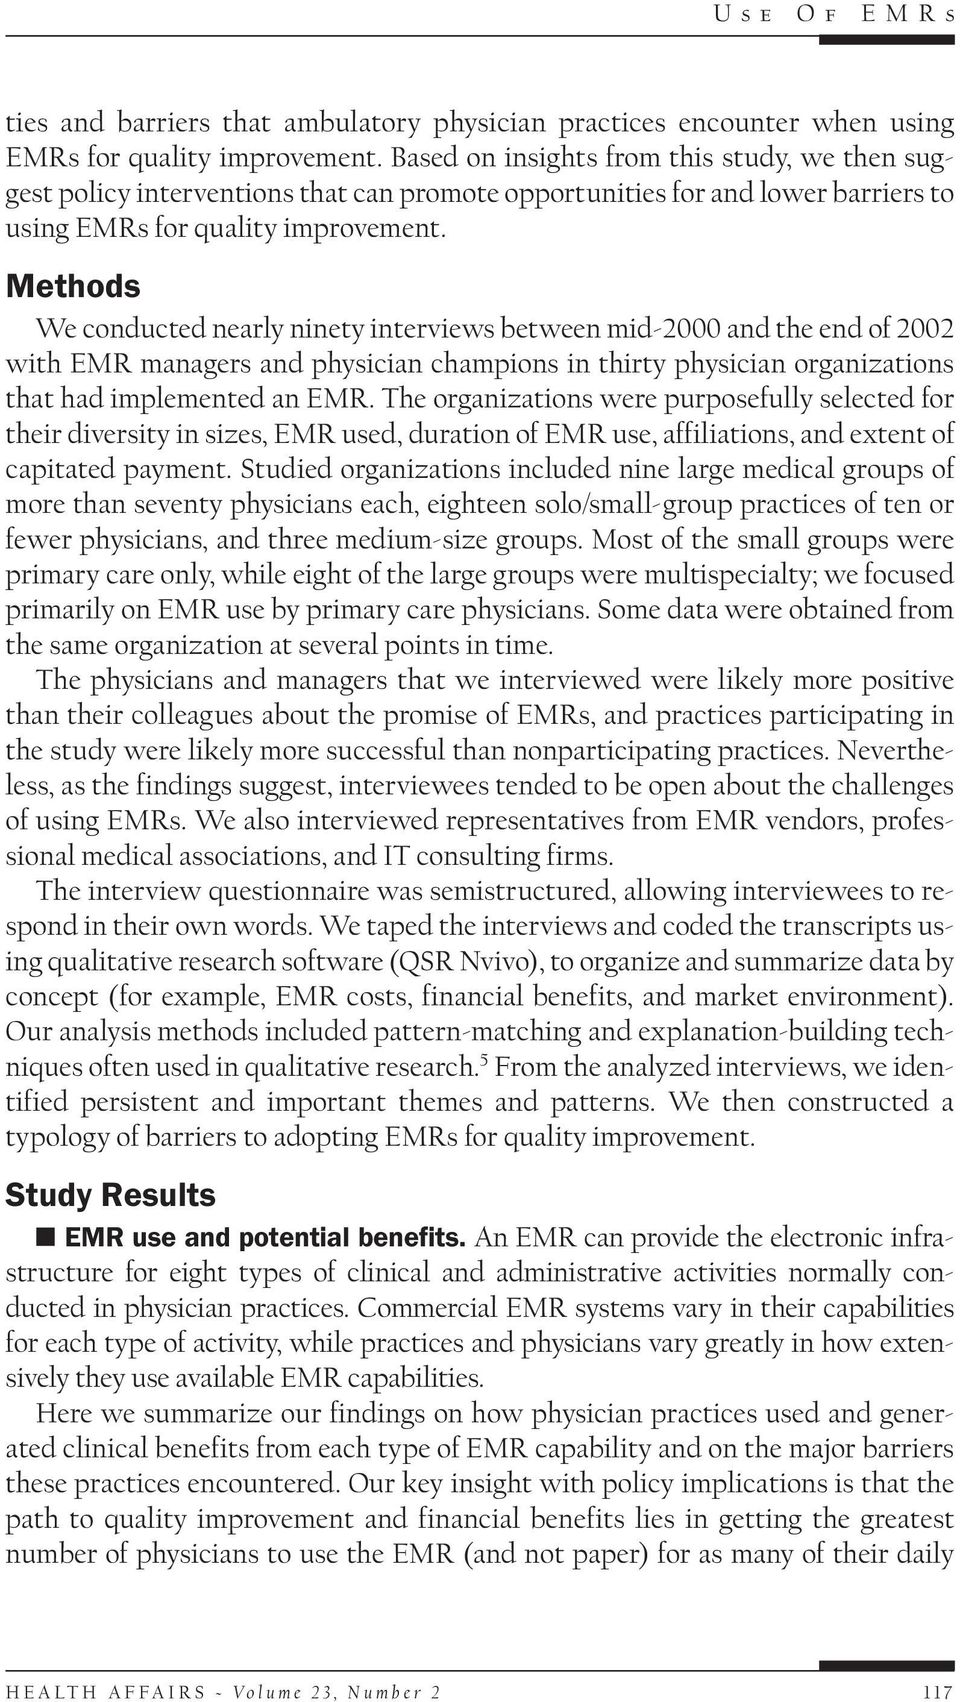 Methods We conducted nearly ninety interviews between mid-2000 and the end of 2002 with EMR managers and physician champions in thirty physician organizations that had implemented an EMR.